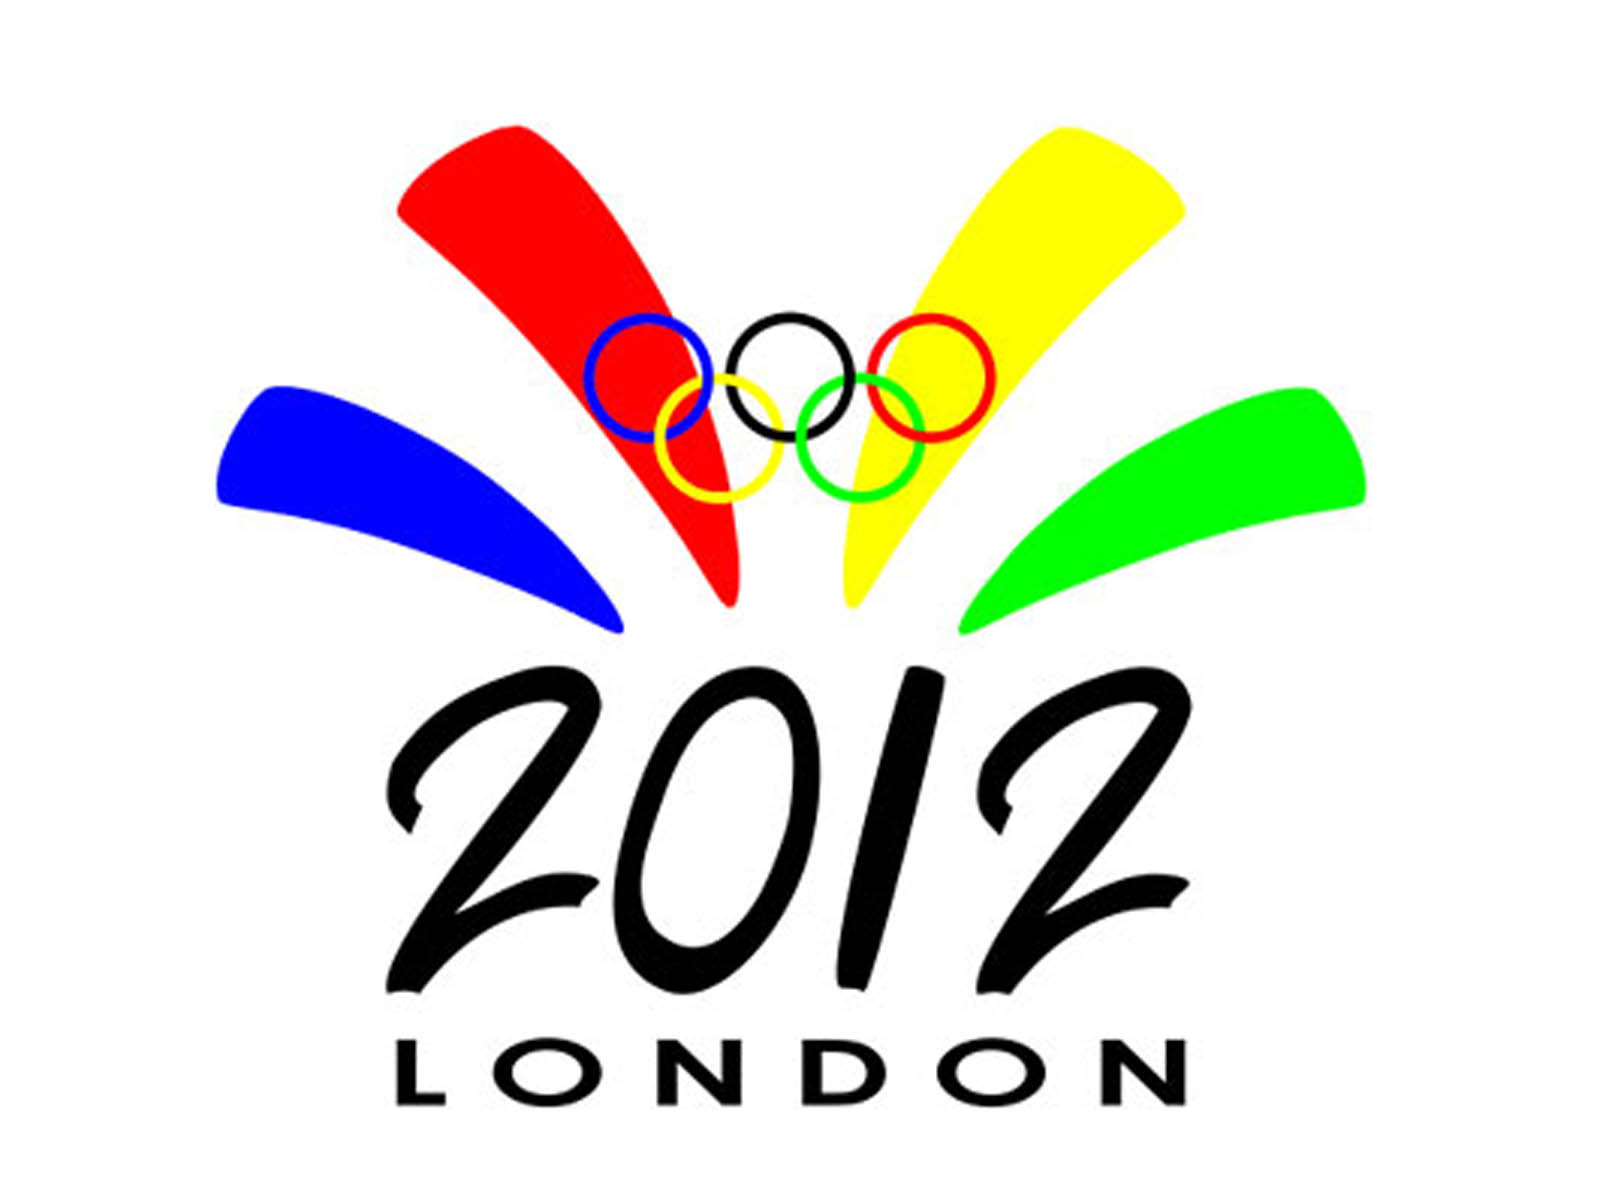 essays on london olympics 2012 Essay on london olympics 2012 in hindi on studybaycom - other, other types - kennykitchens | 100006784.